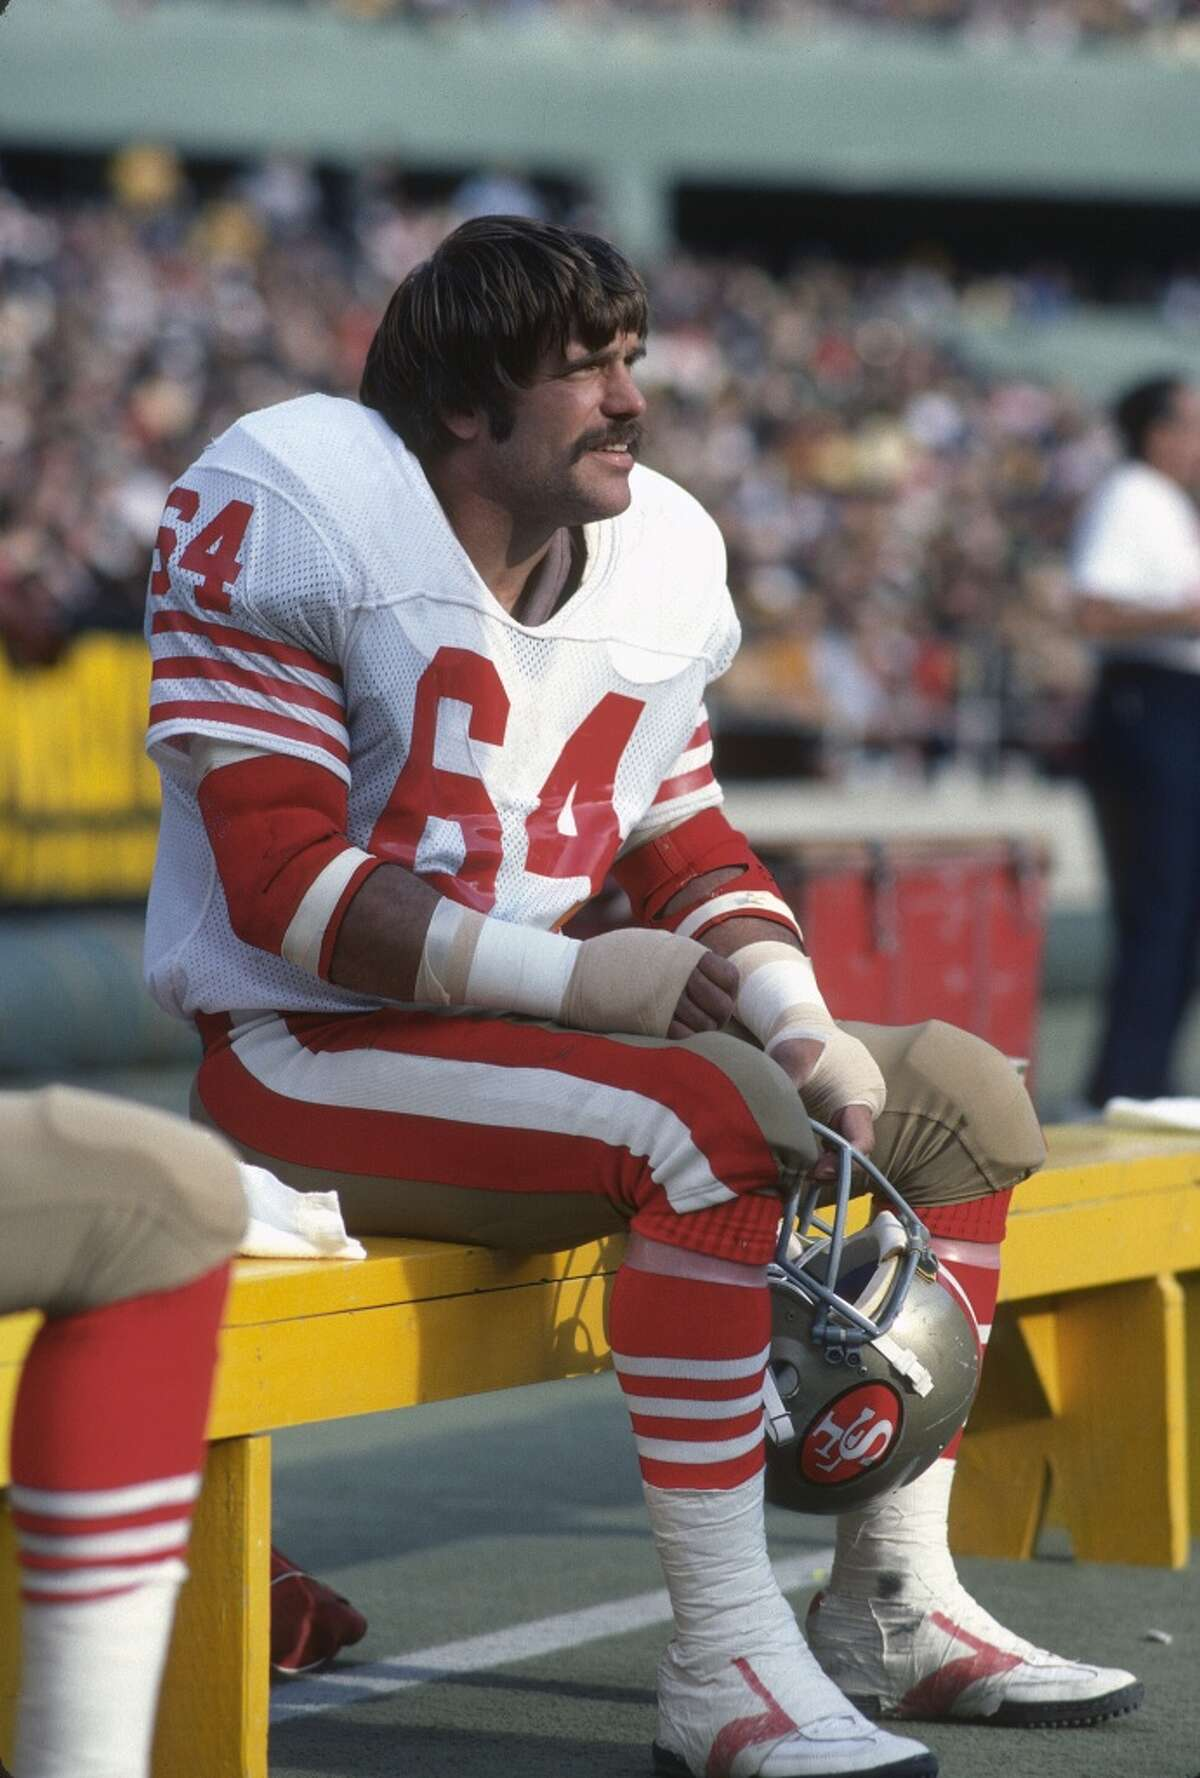 """1970: Jack Reynolds, LB, L.A. Rams He played 15 years in the league and had one of its coolest nicknames: """"Hacksaw."""" He later joined the 49ers and famously showed up at the team breakfast before Super Bowl XVI in full uniform."""